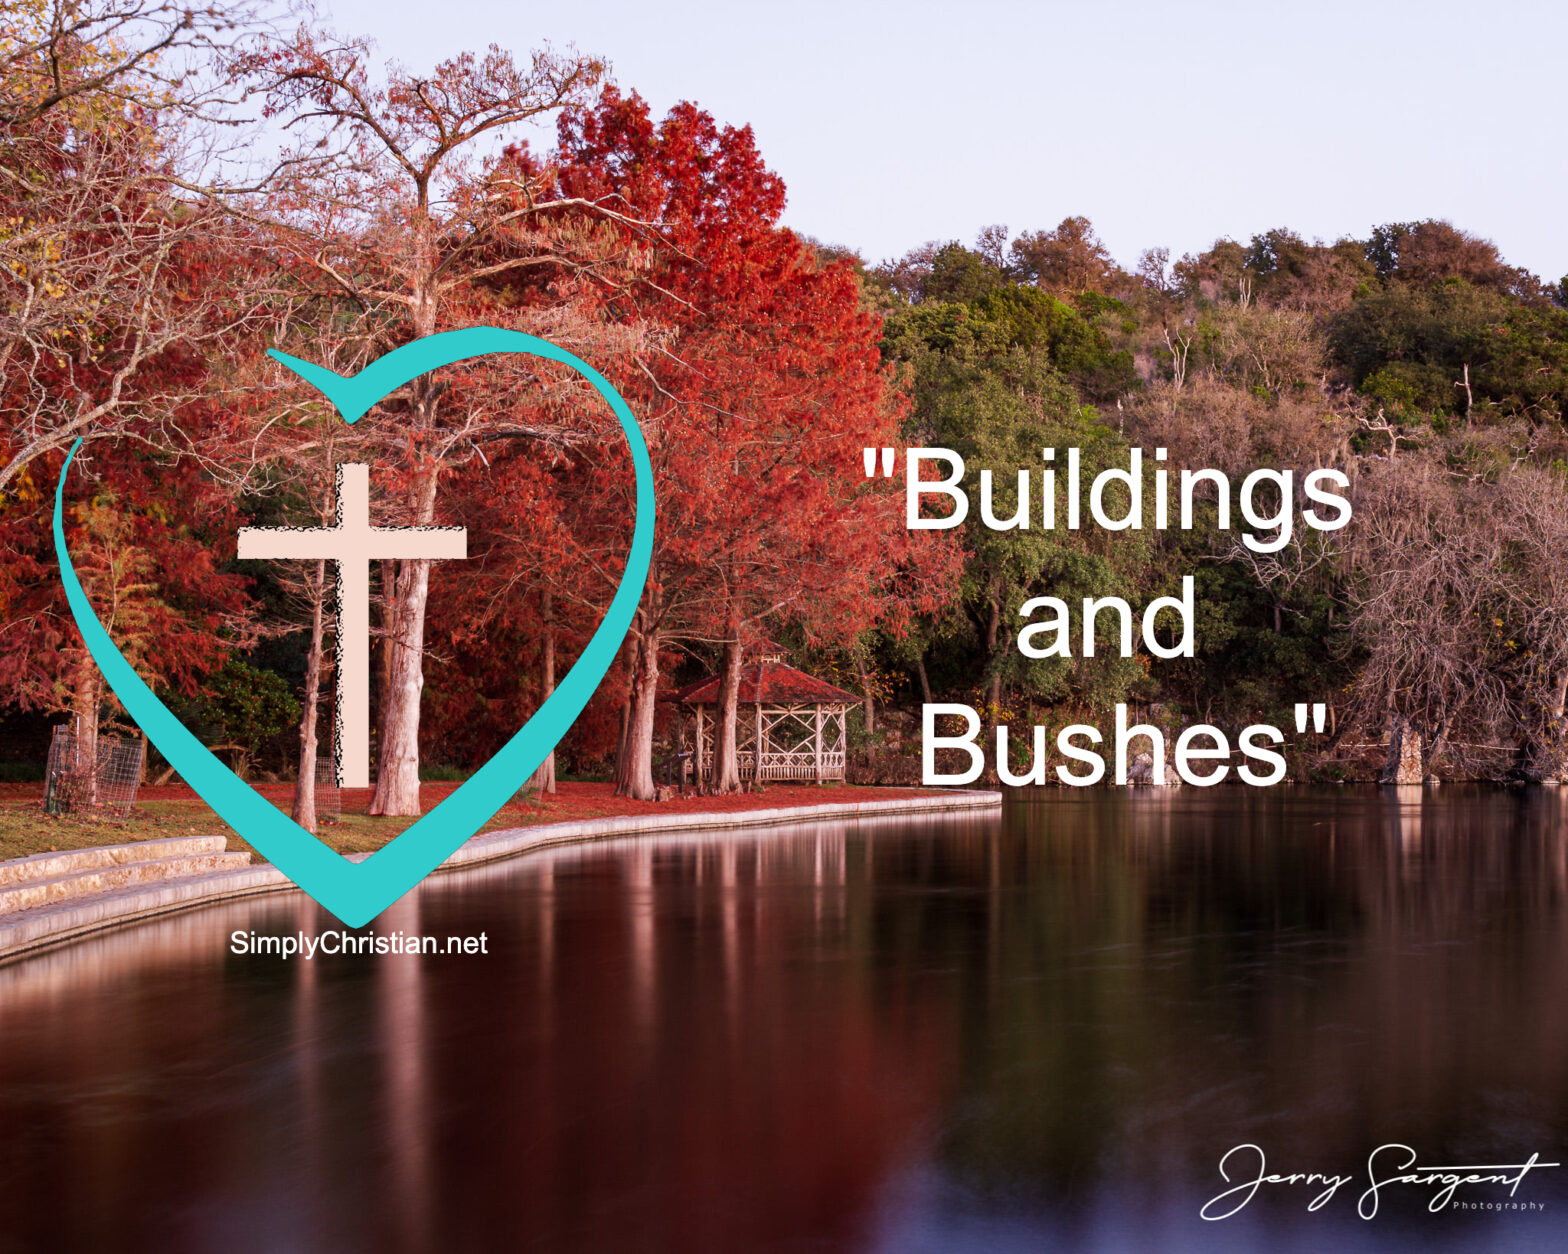 Buildings and Bushes SimplyChristian Dave Nance